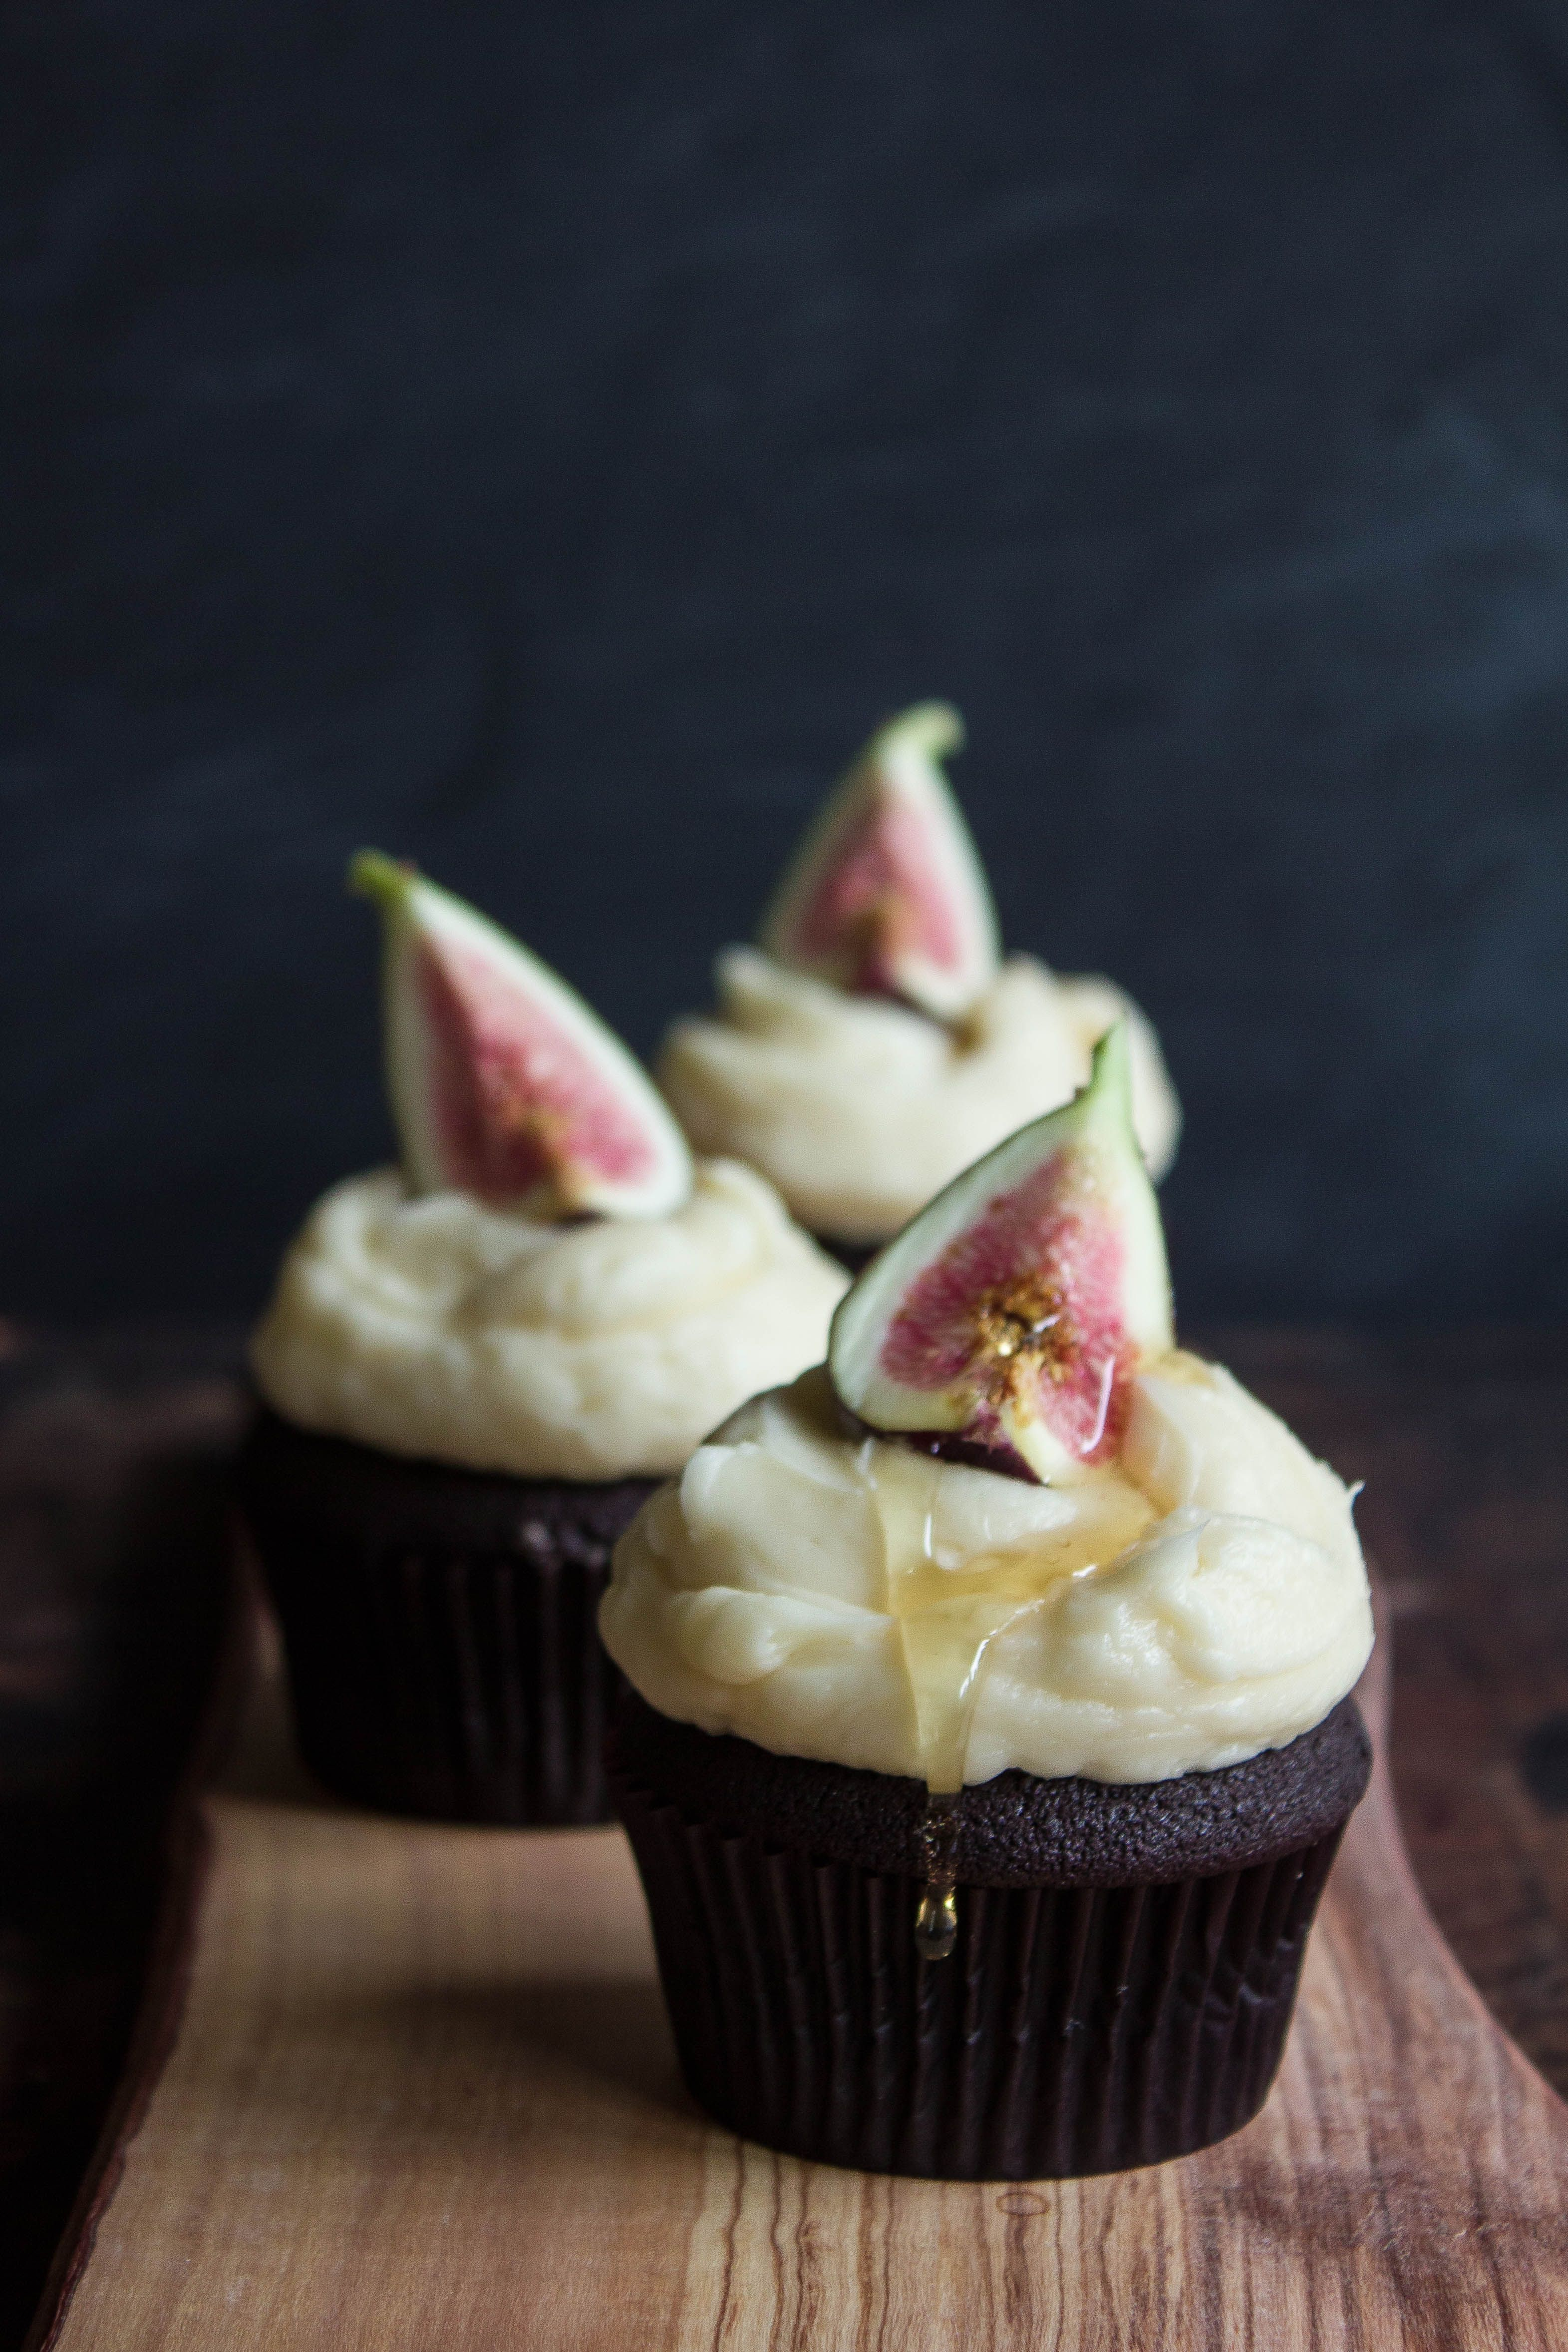 Chocolate cupcakes topped with fresh figs and drizzled with honey